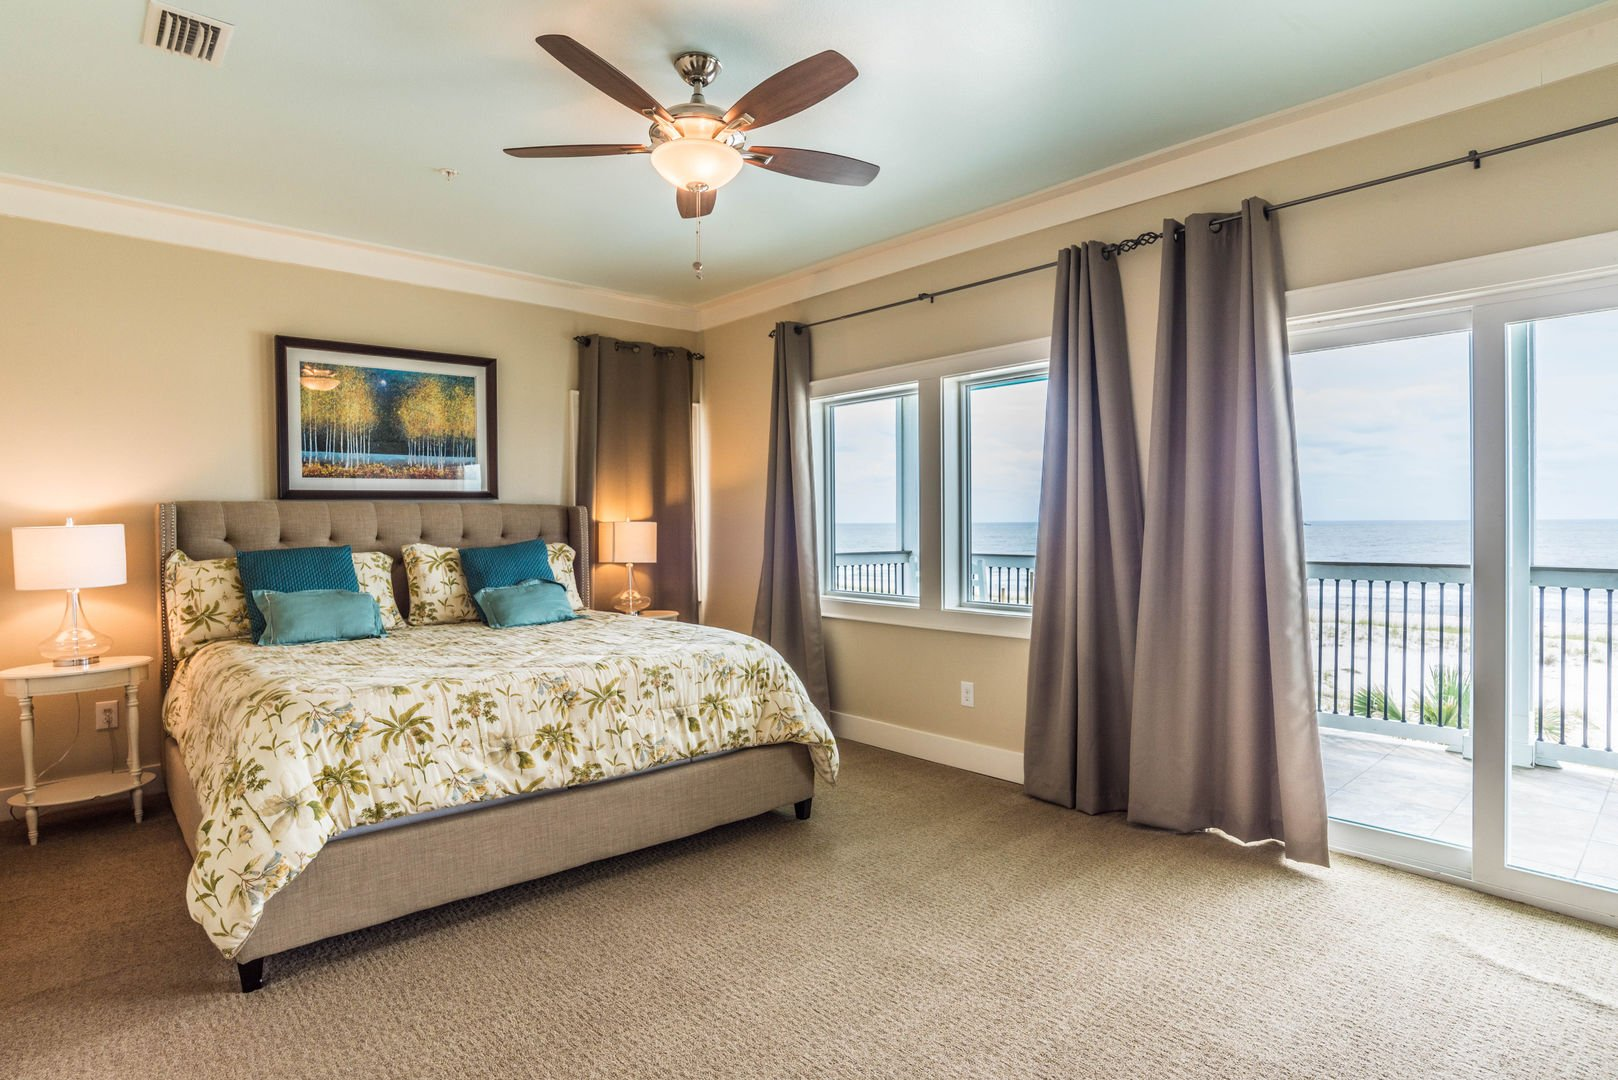 Additional Guest Room with Patio Access